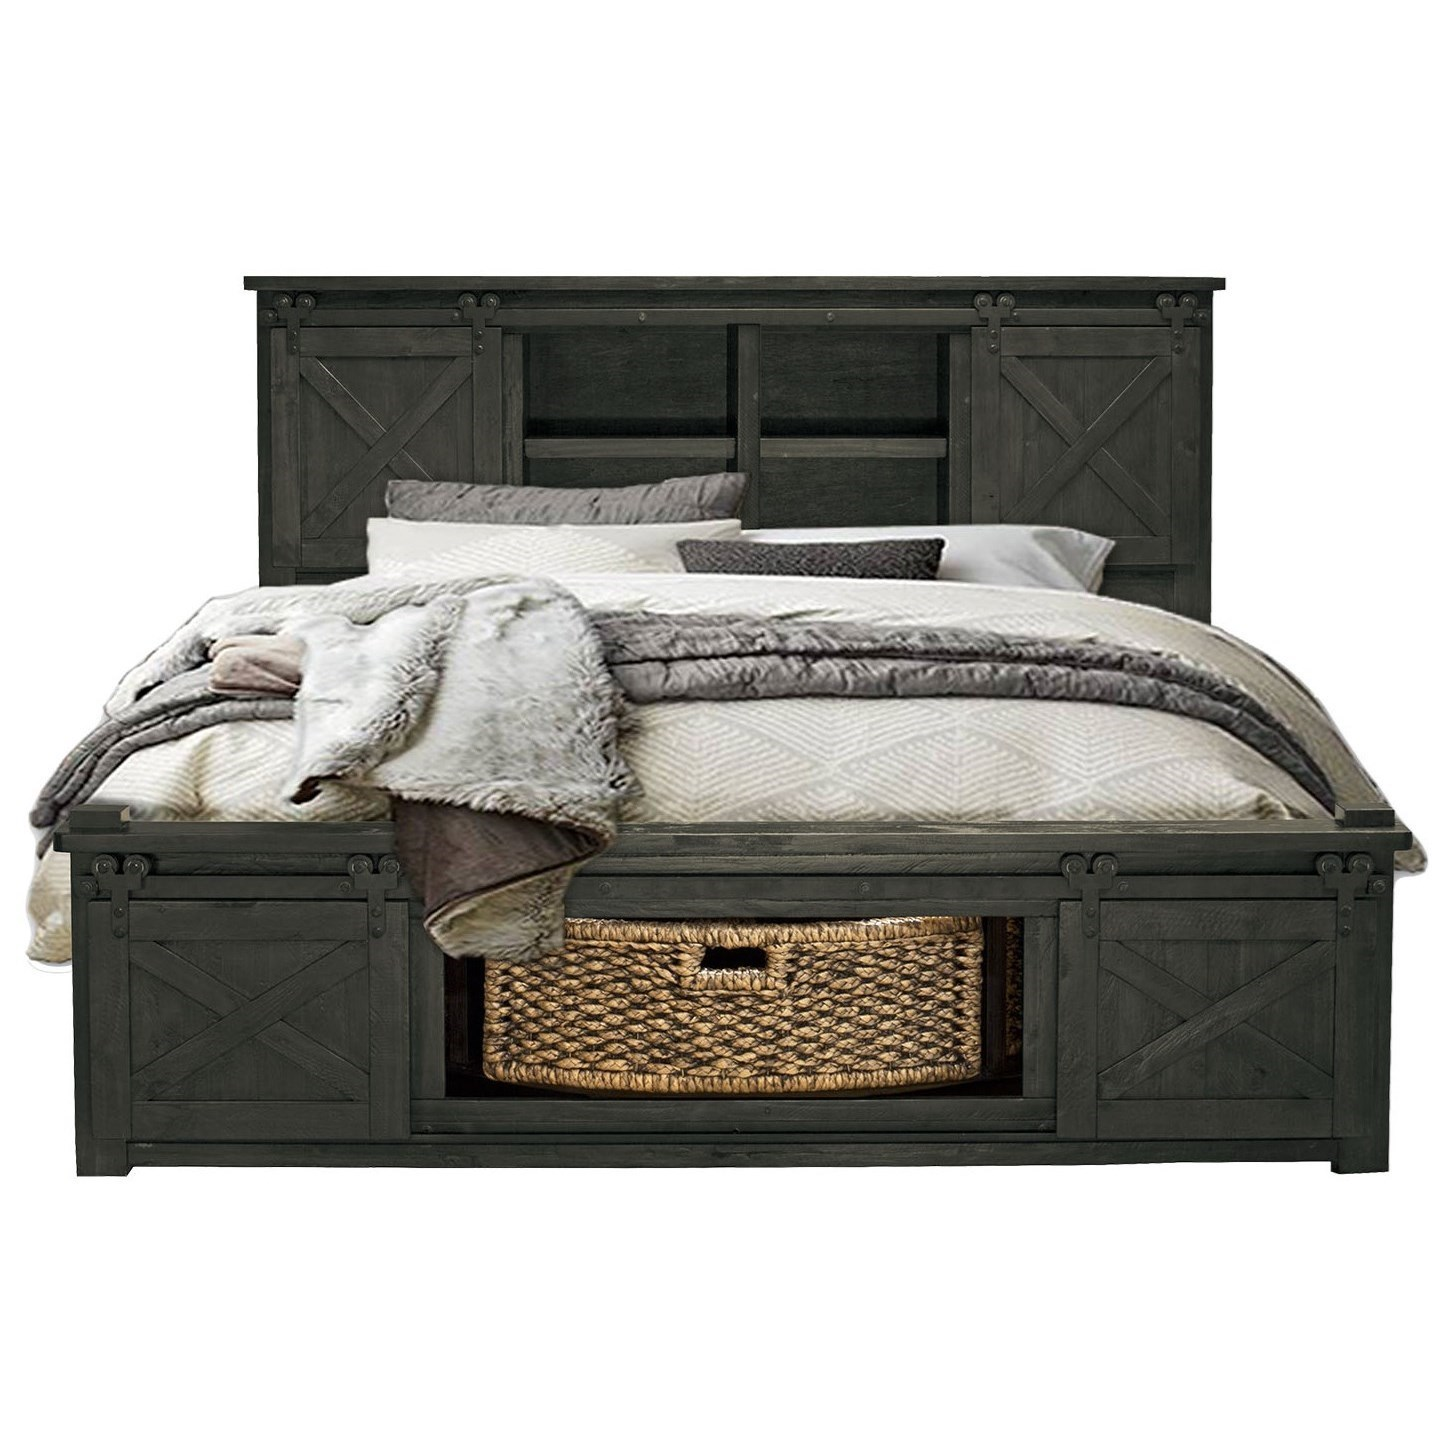 Queen Bed with Rotating Storage